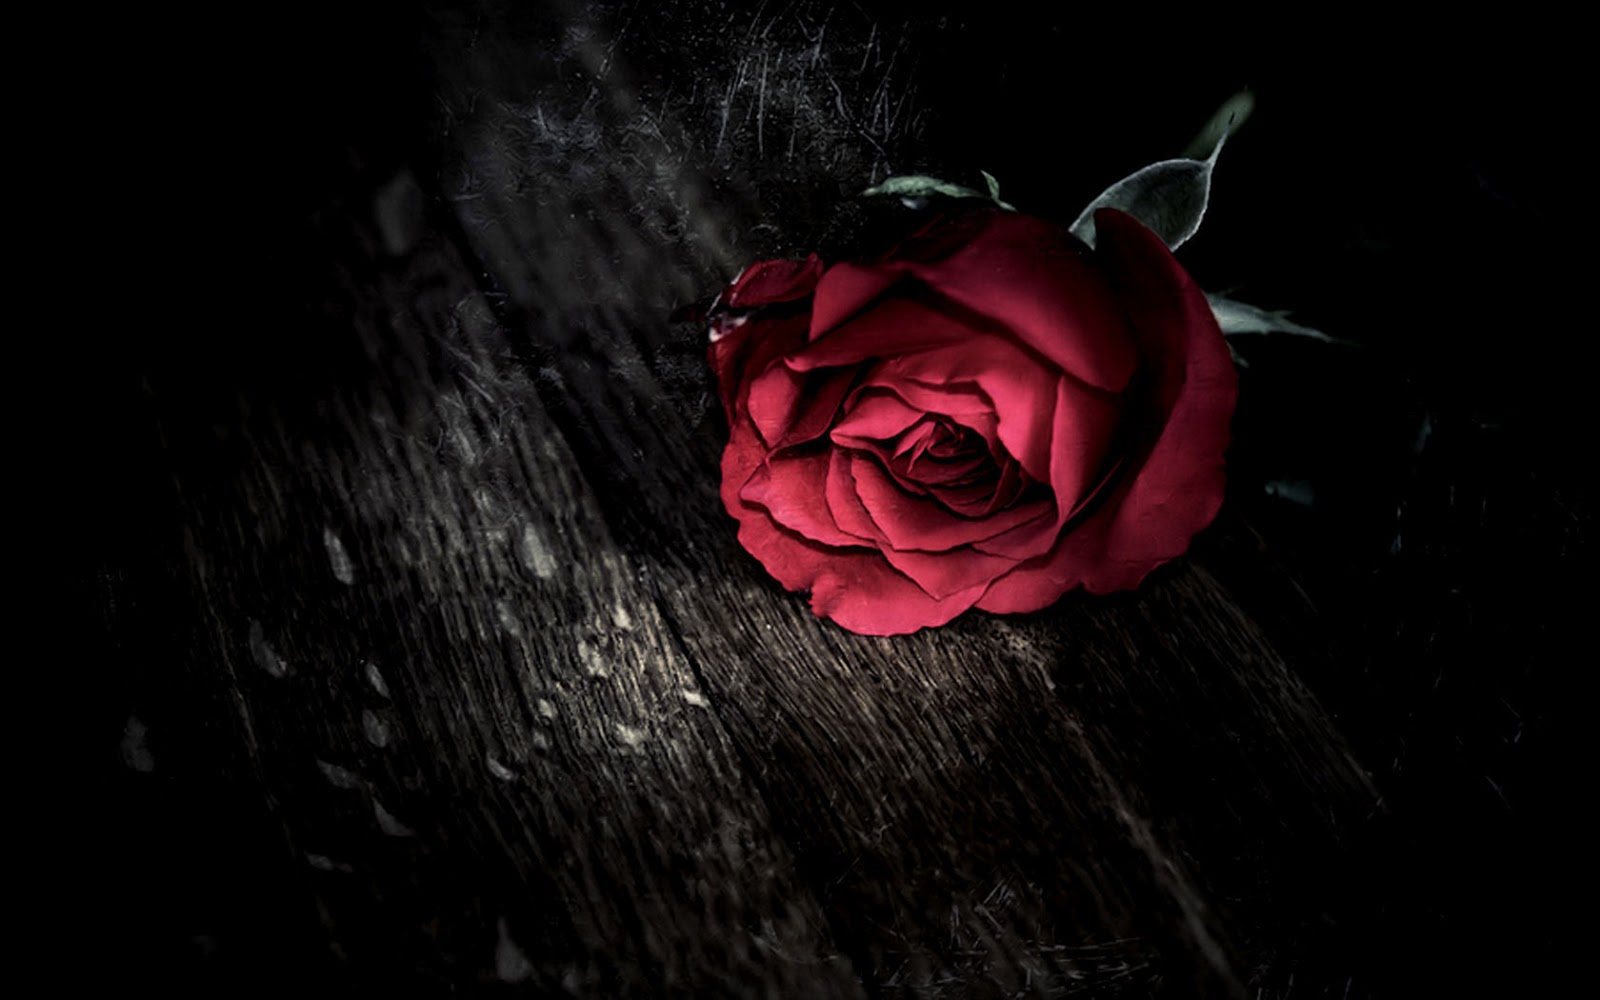 Red Rose Images HD Download